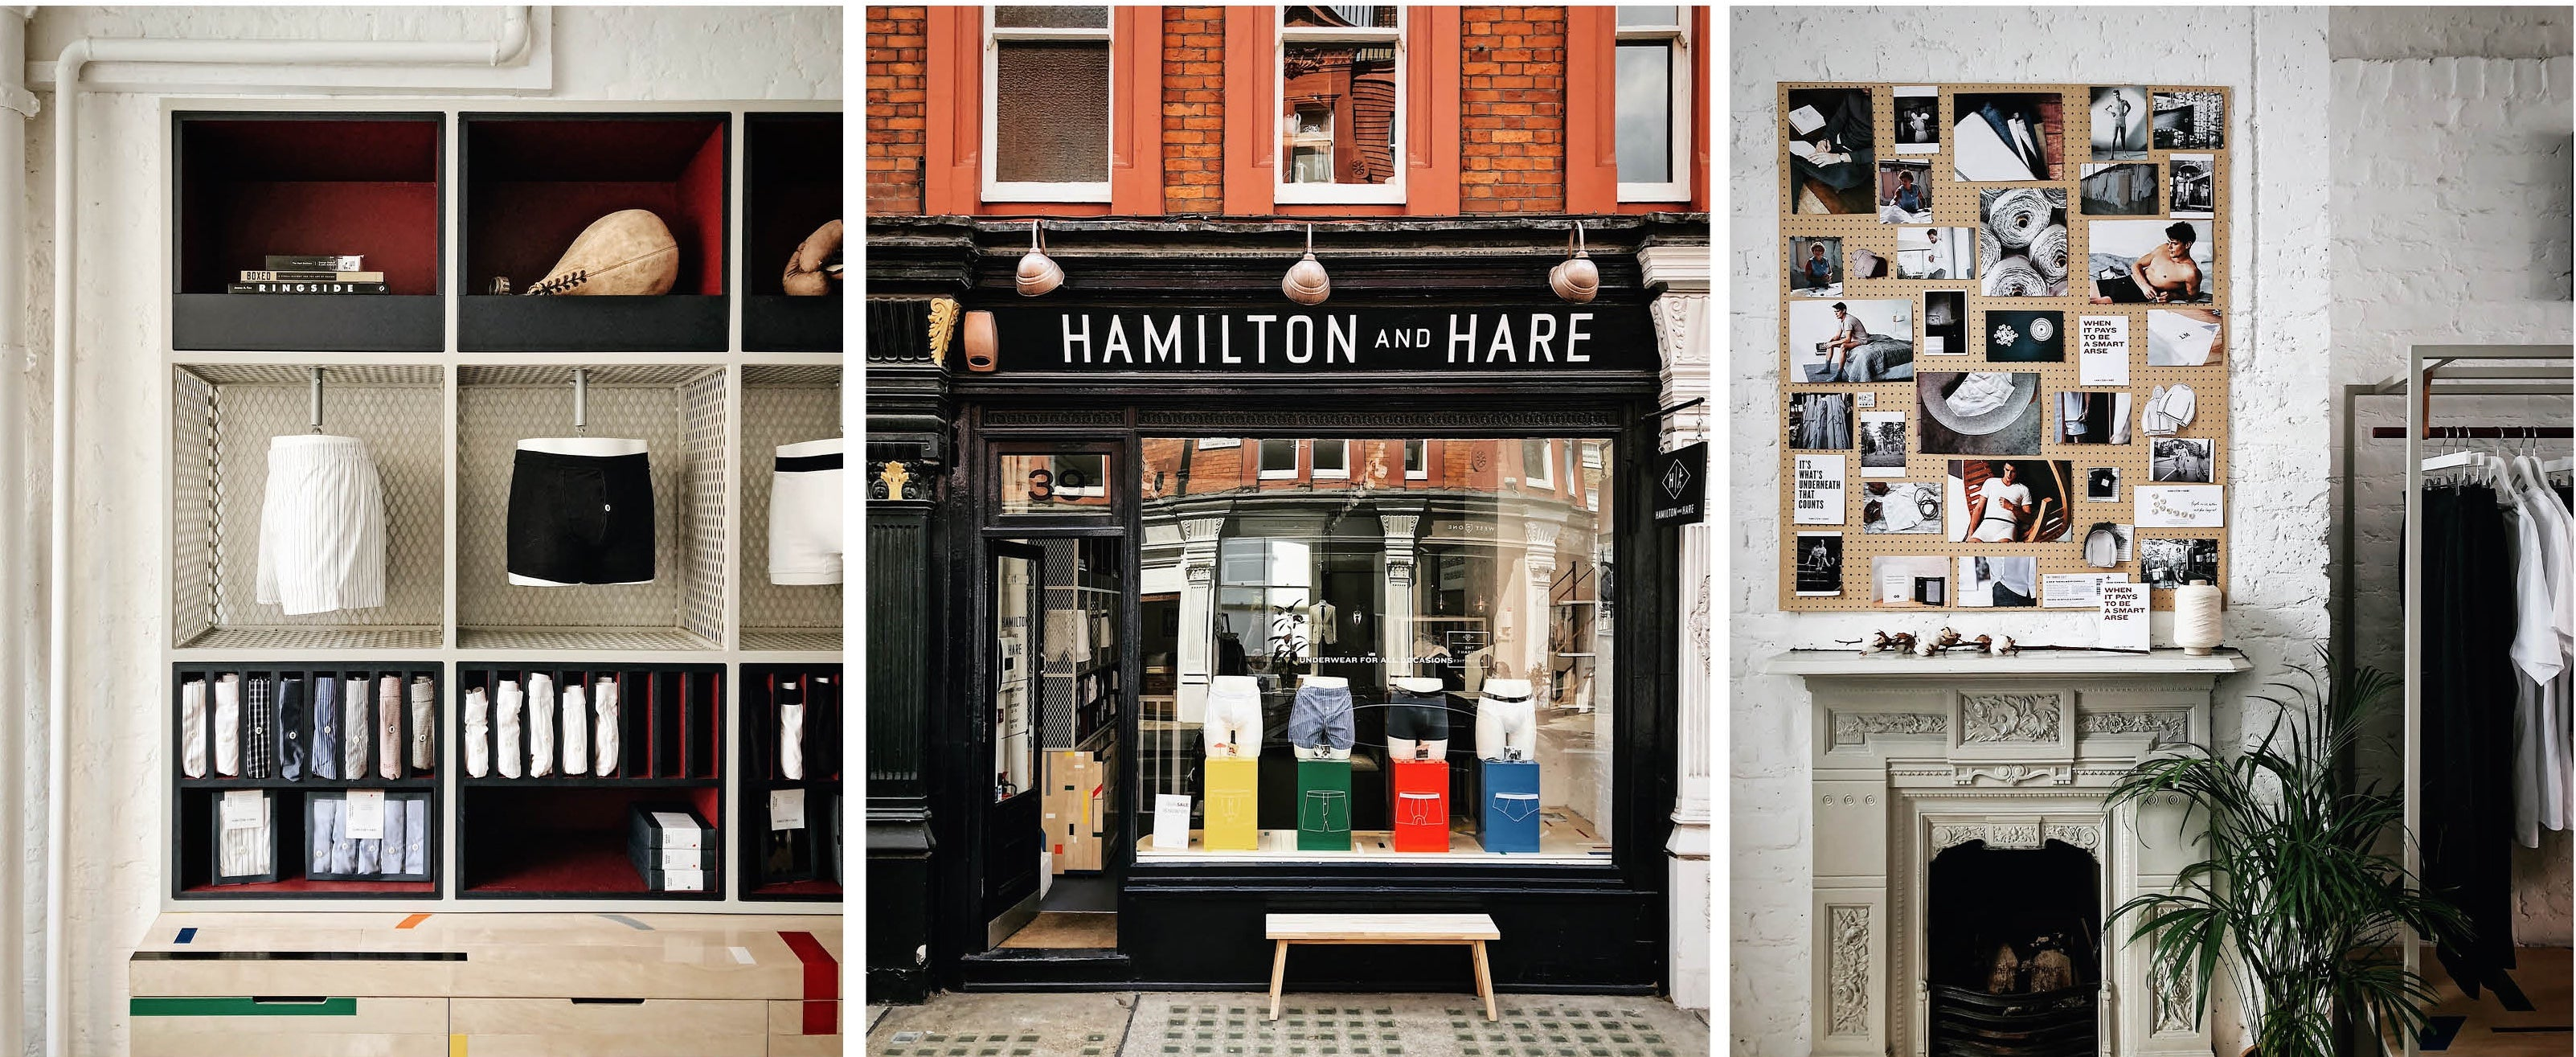 Hamilton and Hare mens underwear shop store chiltern street London